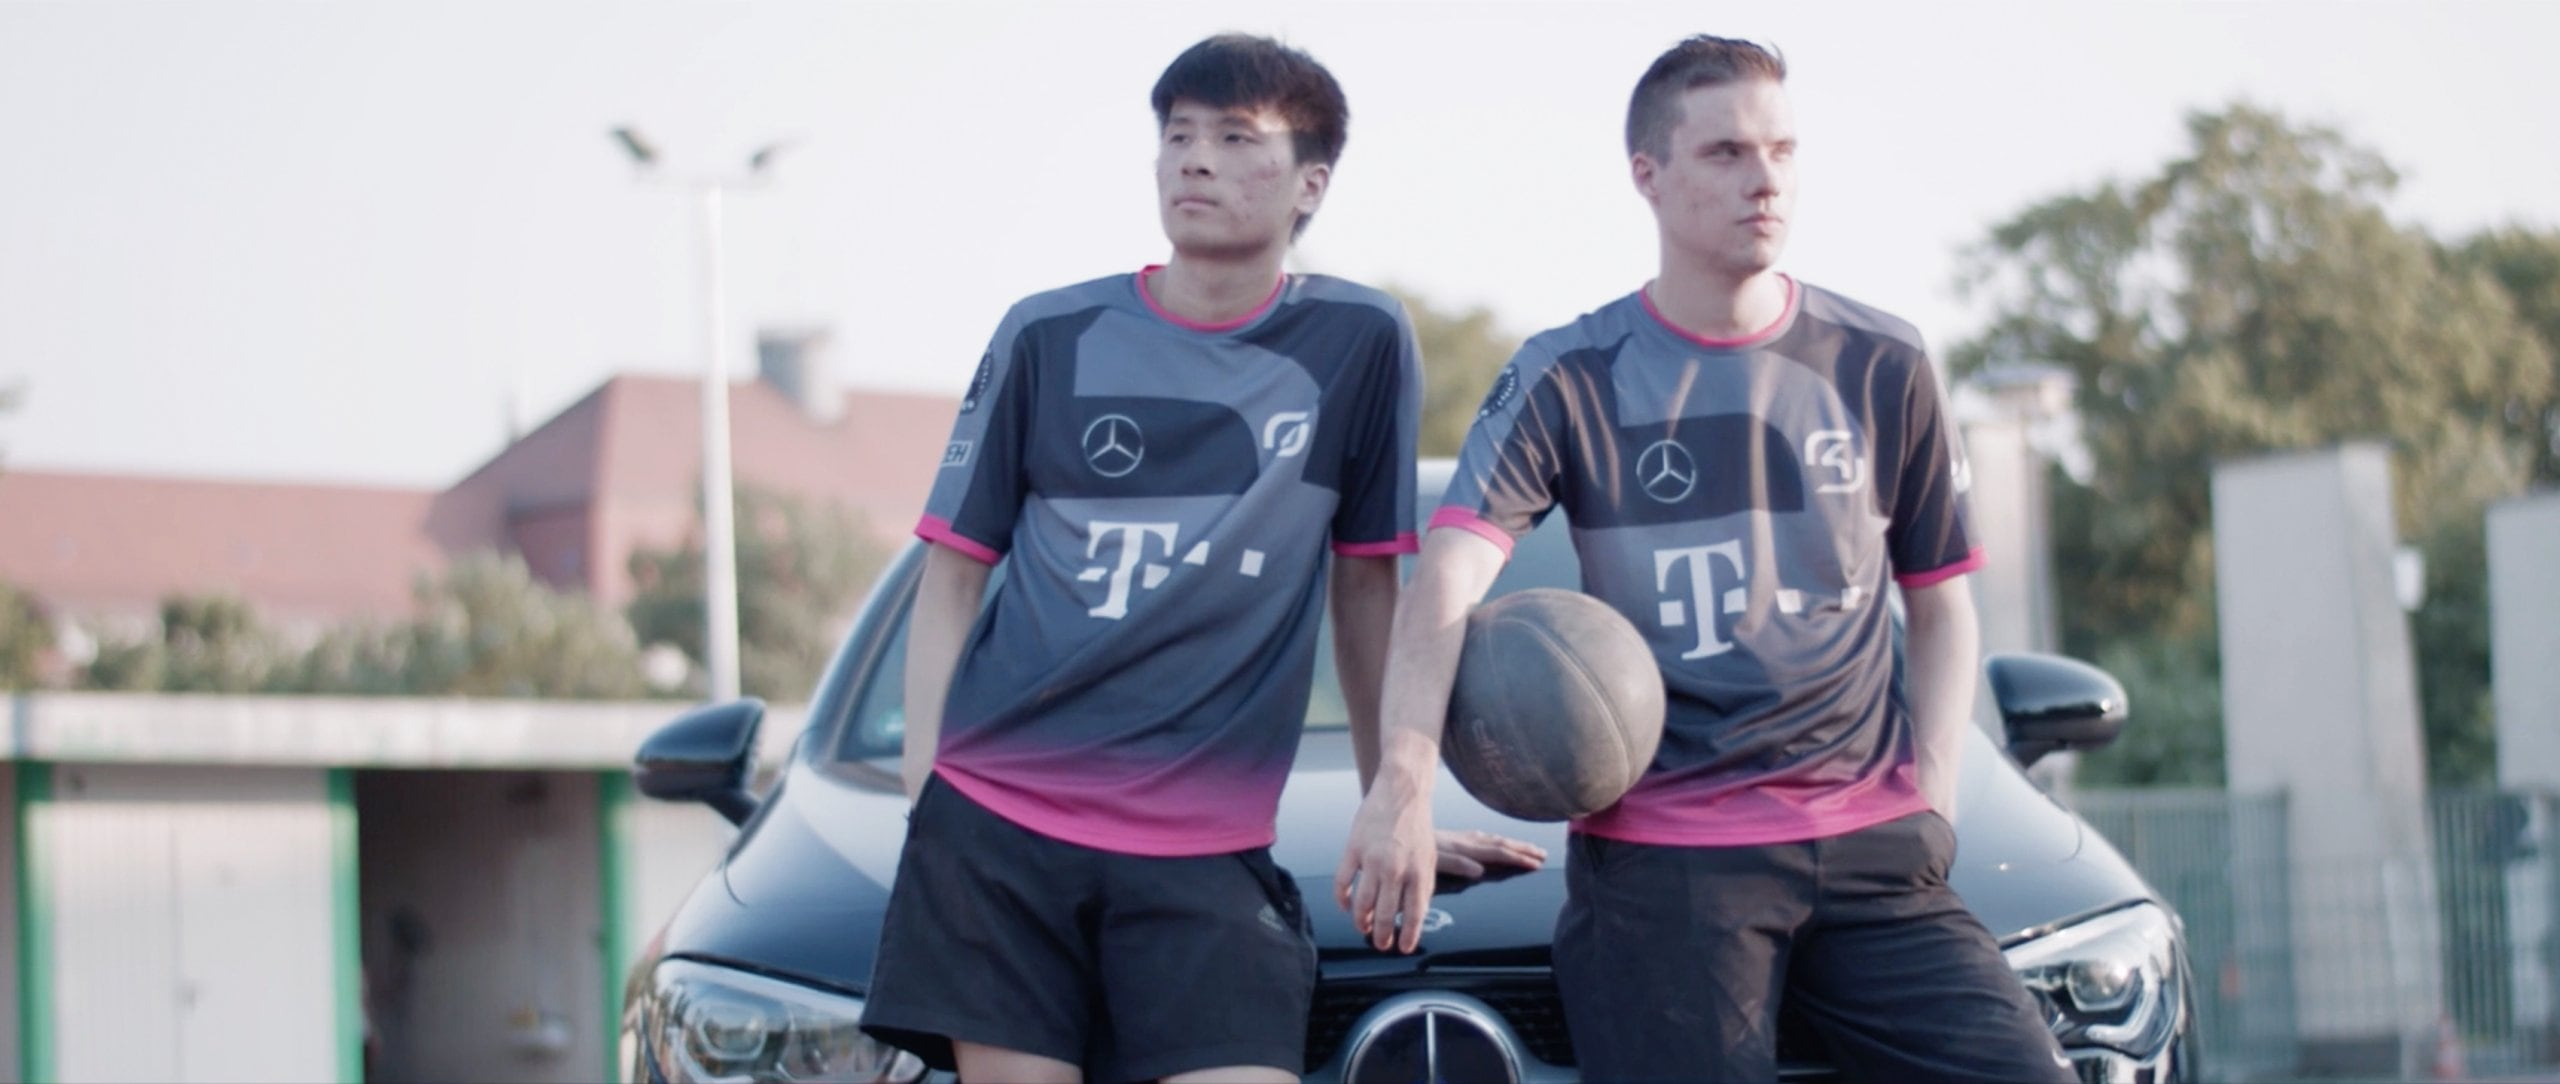 The two gamers, Juš Marušič and Min Kook Han, lean on the Mercedes-Benz CLA 200 Coupé.